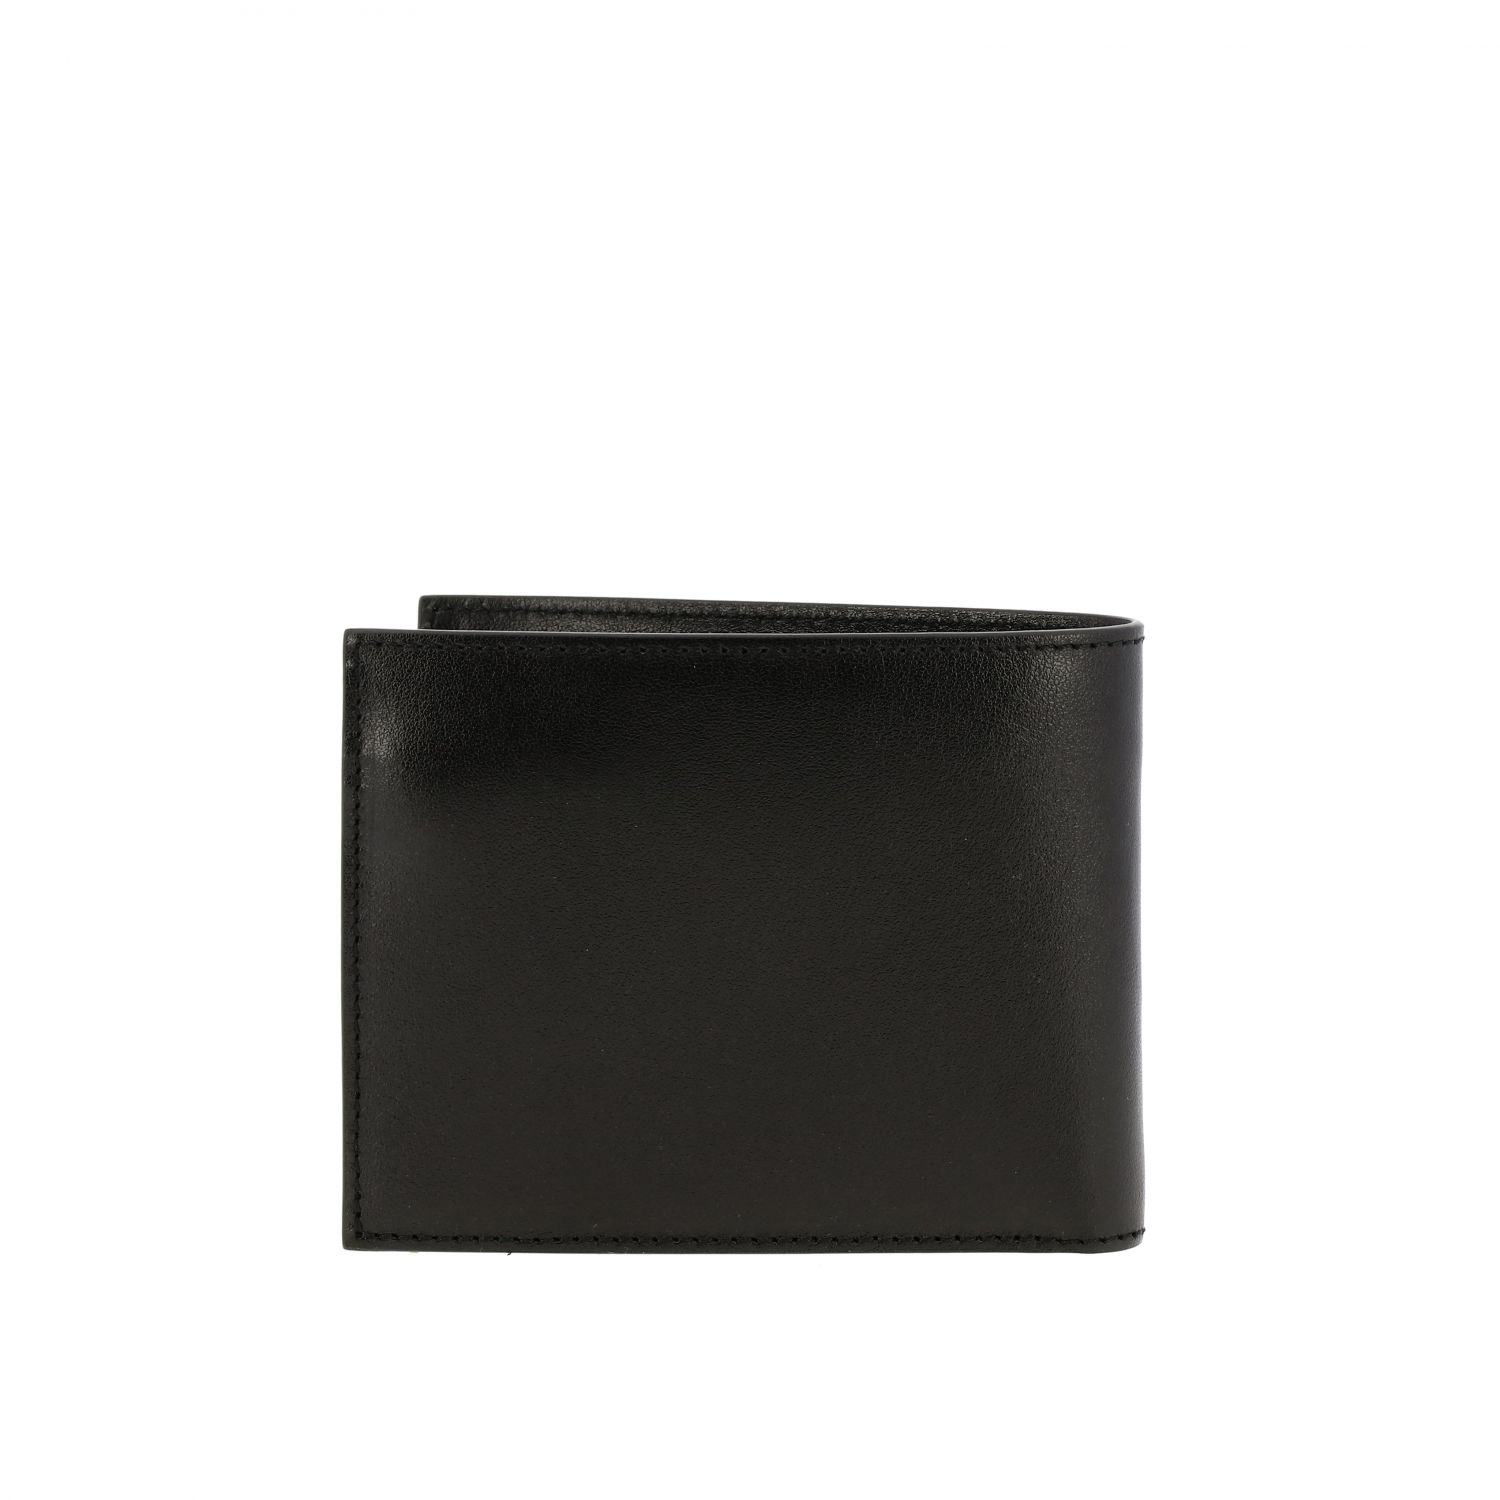 Off White leather wallet with